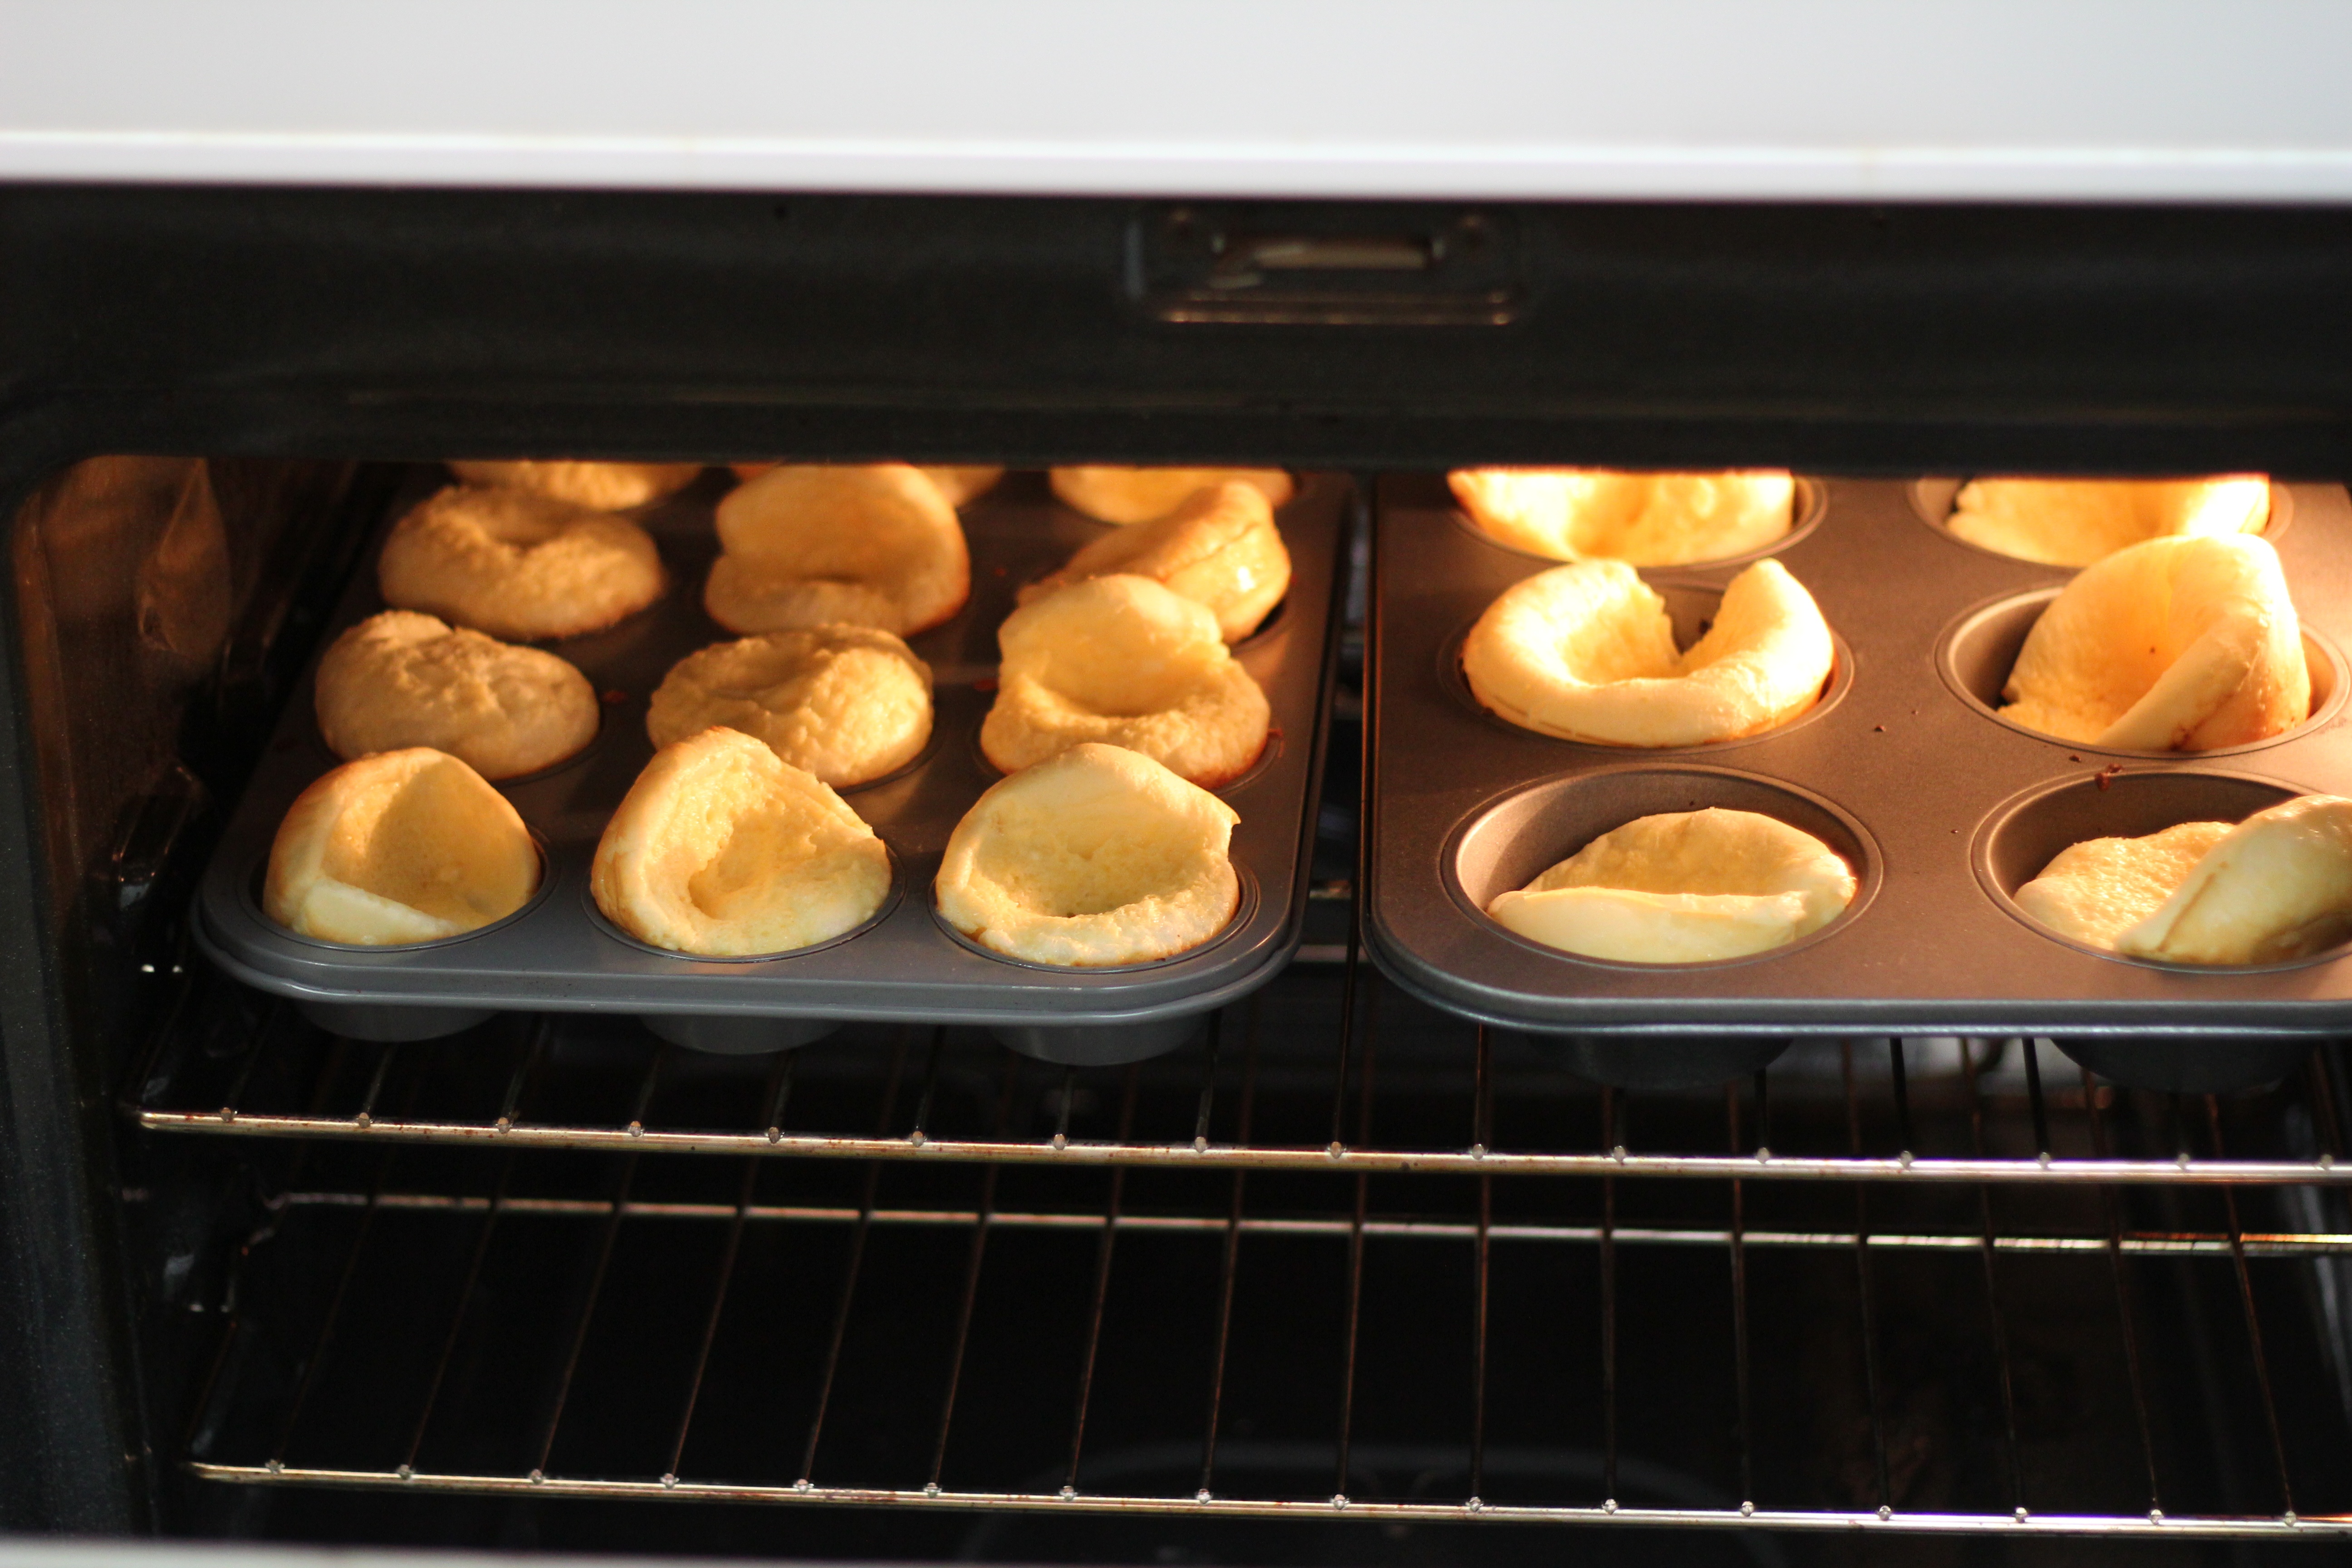 Once youve tried german pancakes muffin style youll never go back img0474 ccuart Image collections